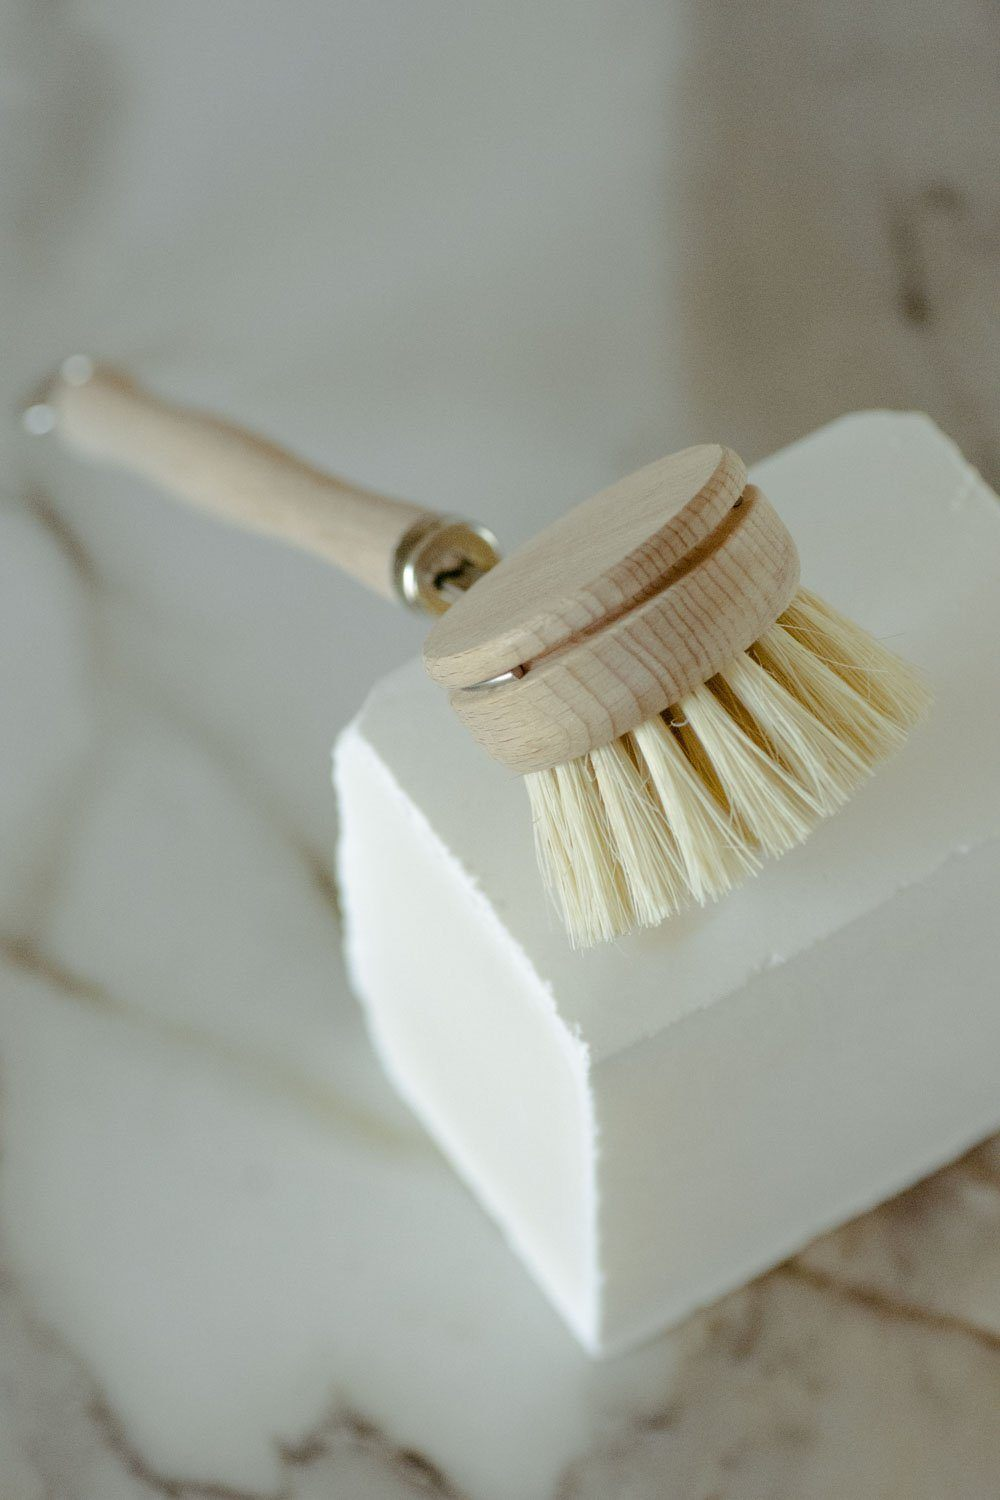 BIODEGRADABLE DISH BRUSH REPLACEMENT HEAD